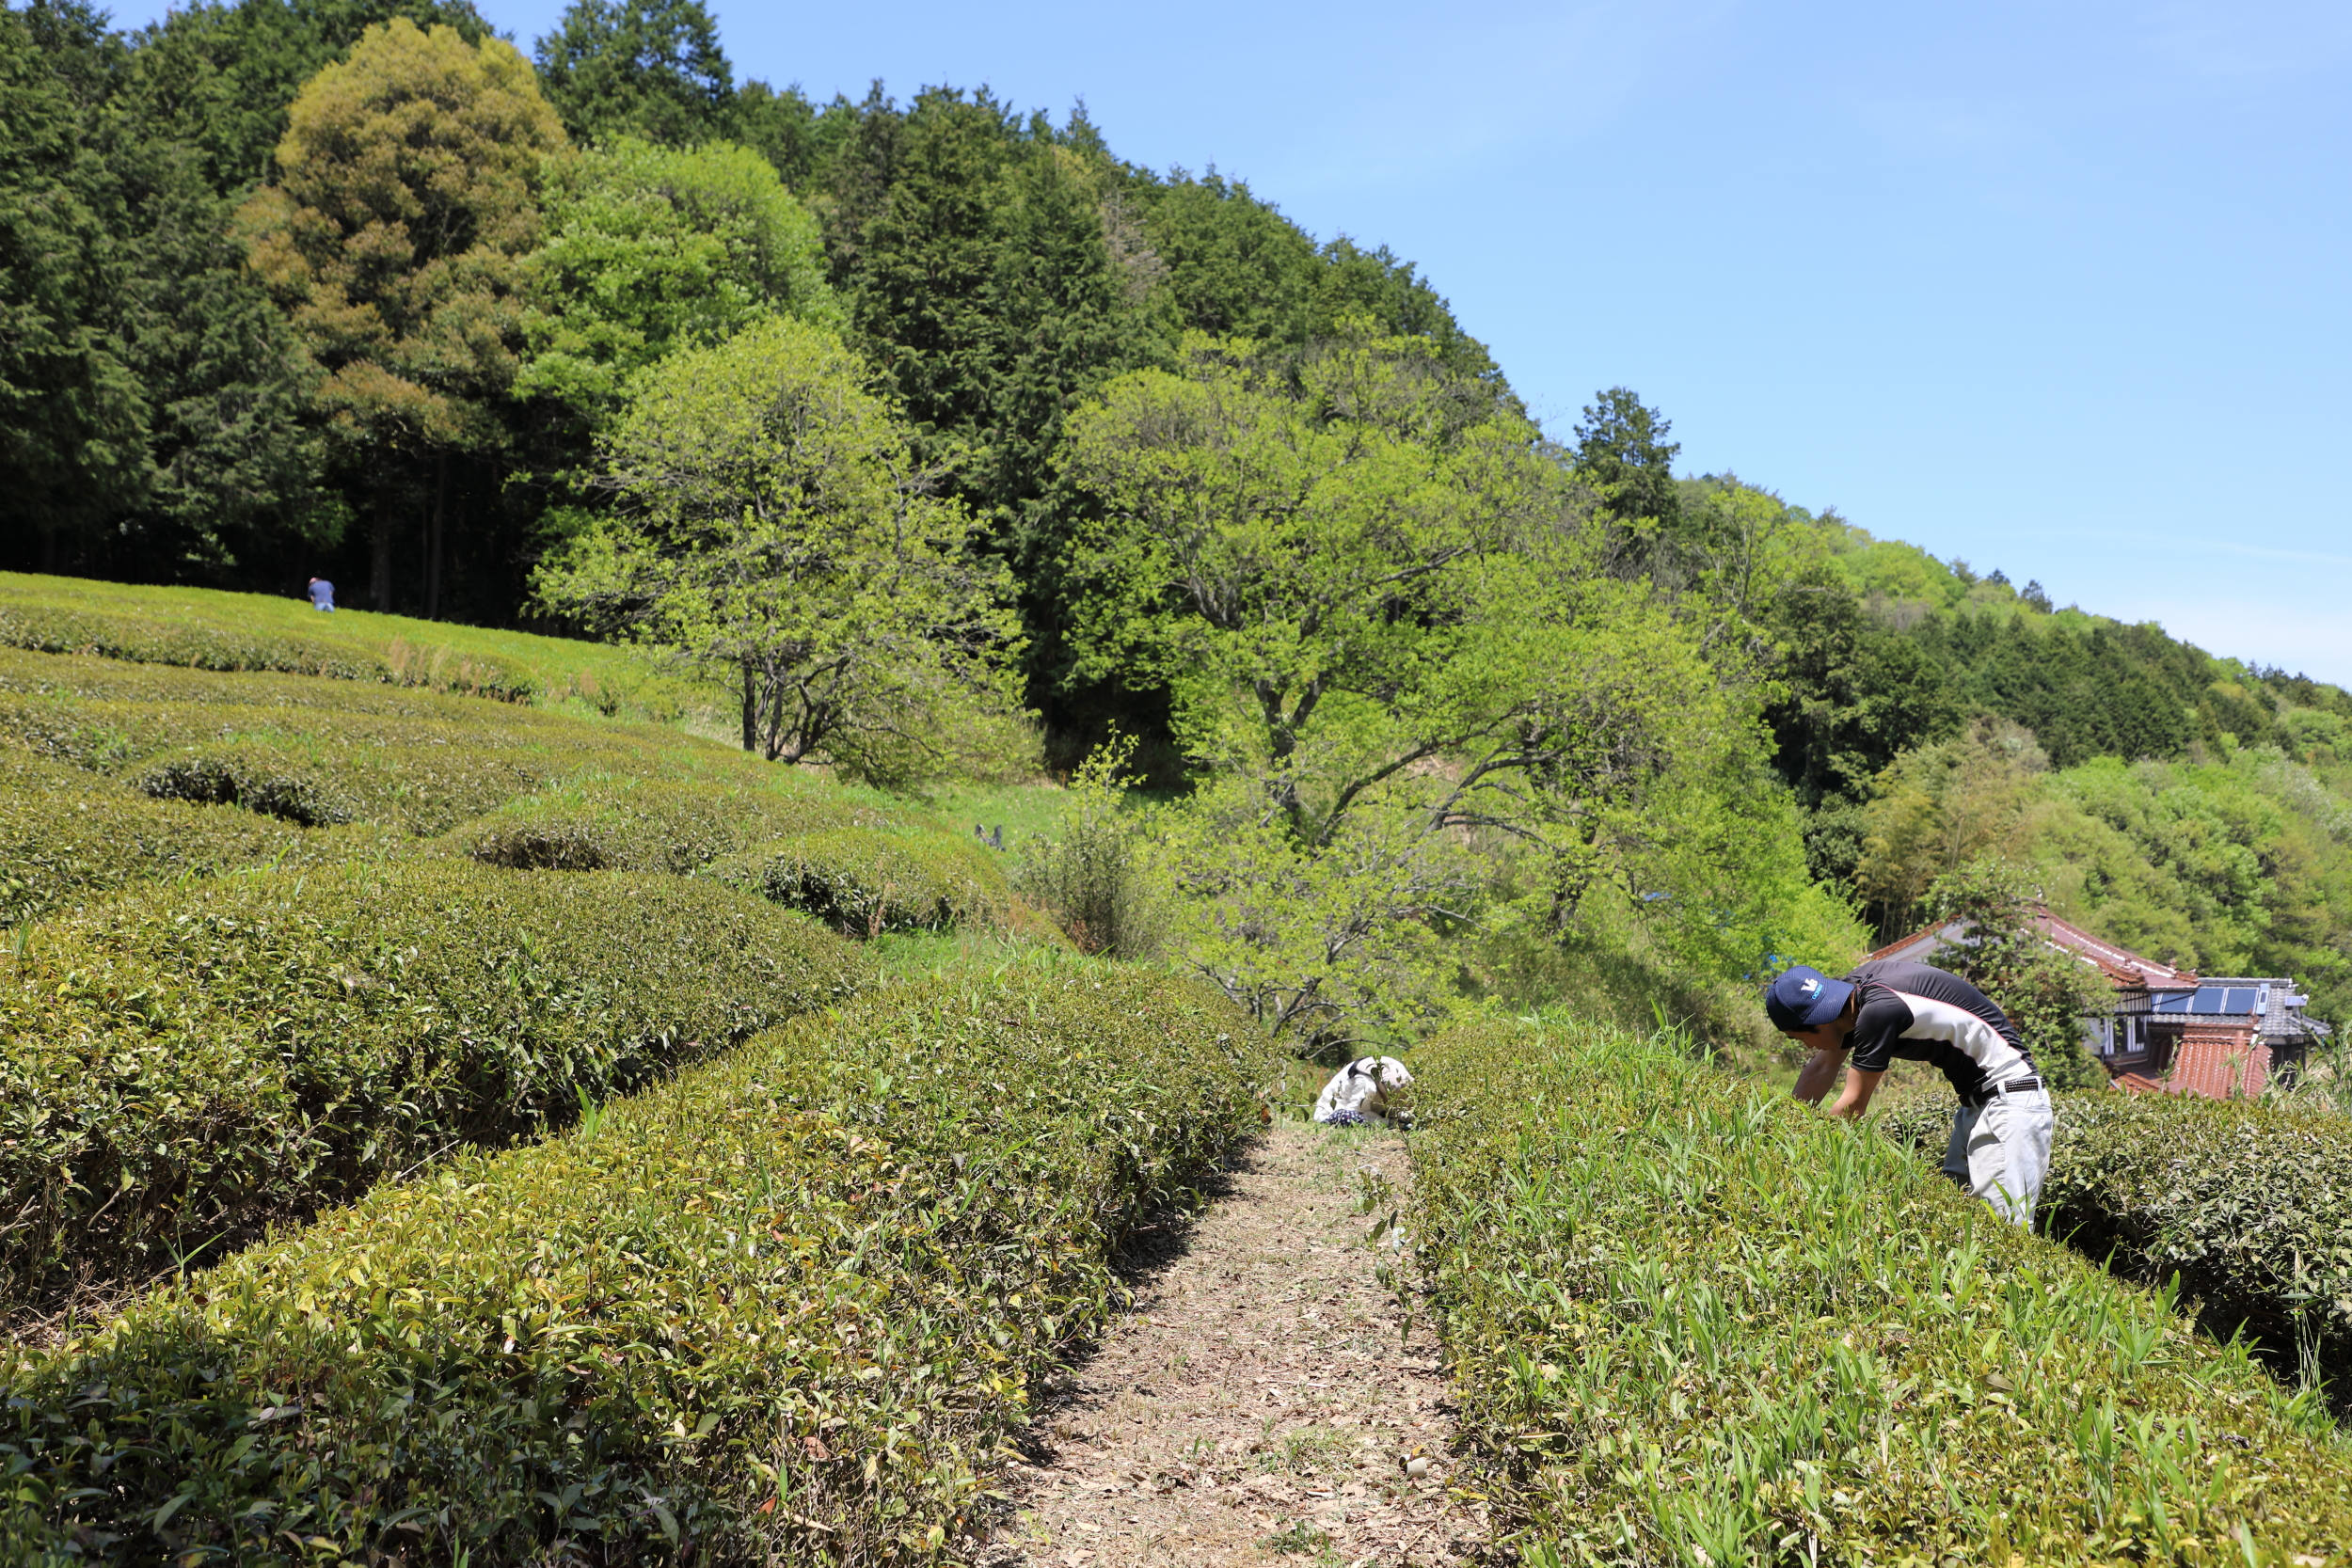 Genki in the far distant right and two friends weeding and tending the tea field in preparation for harvesting the first flush of green tea, called  shincha , in late May.